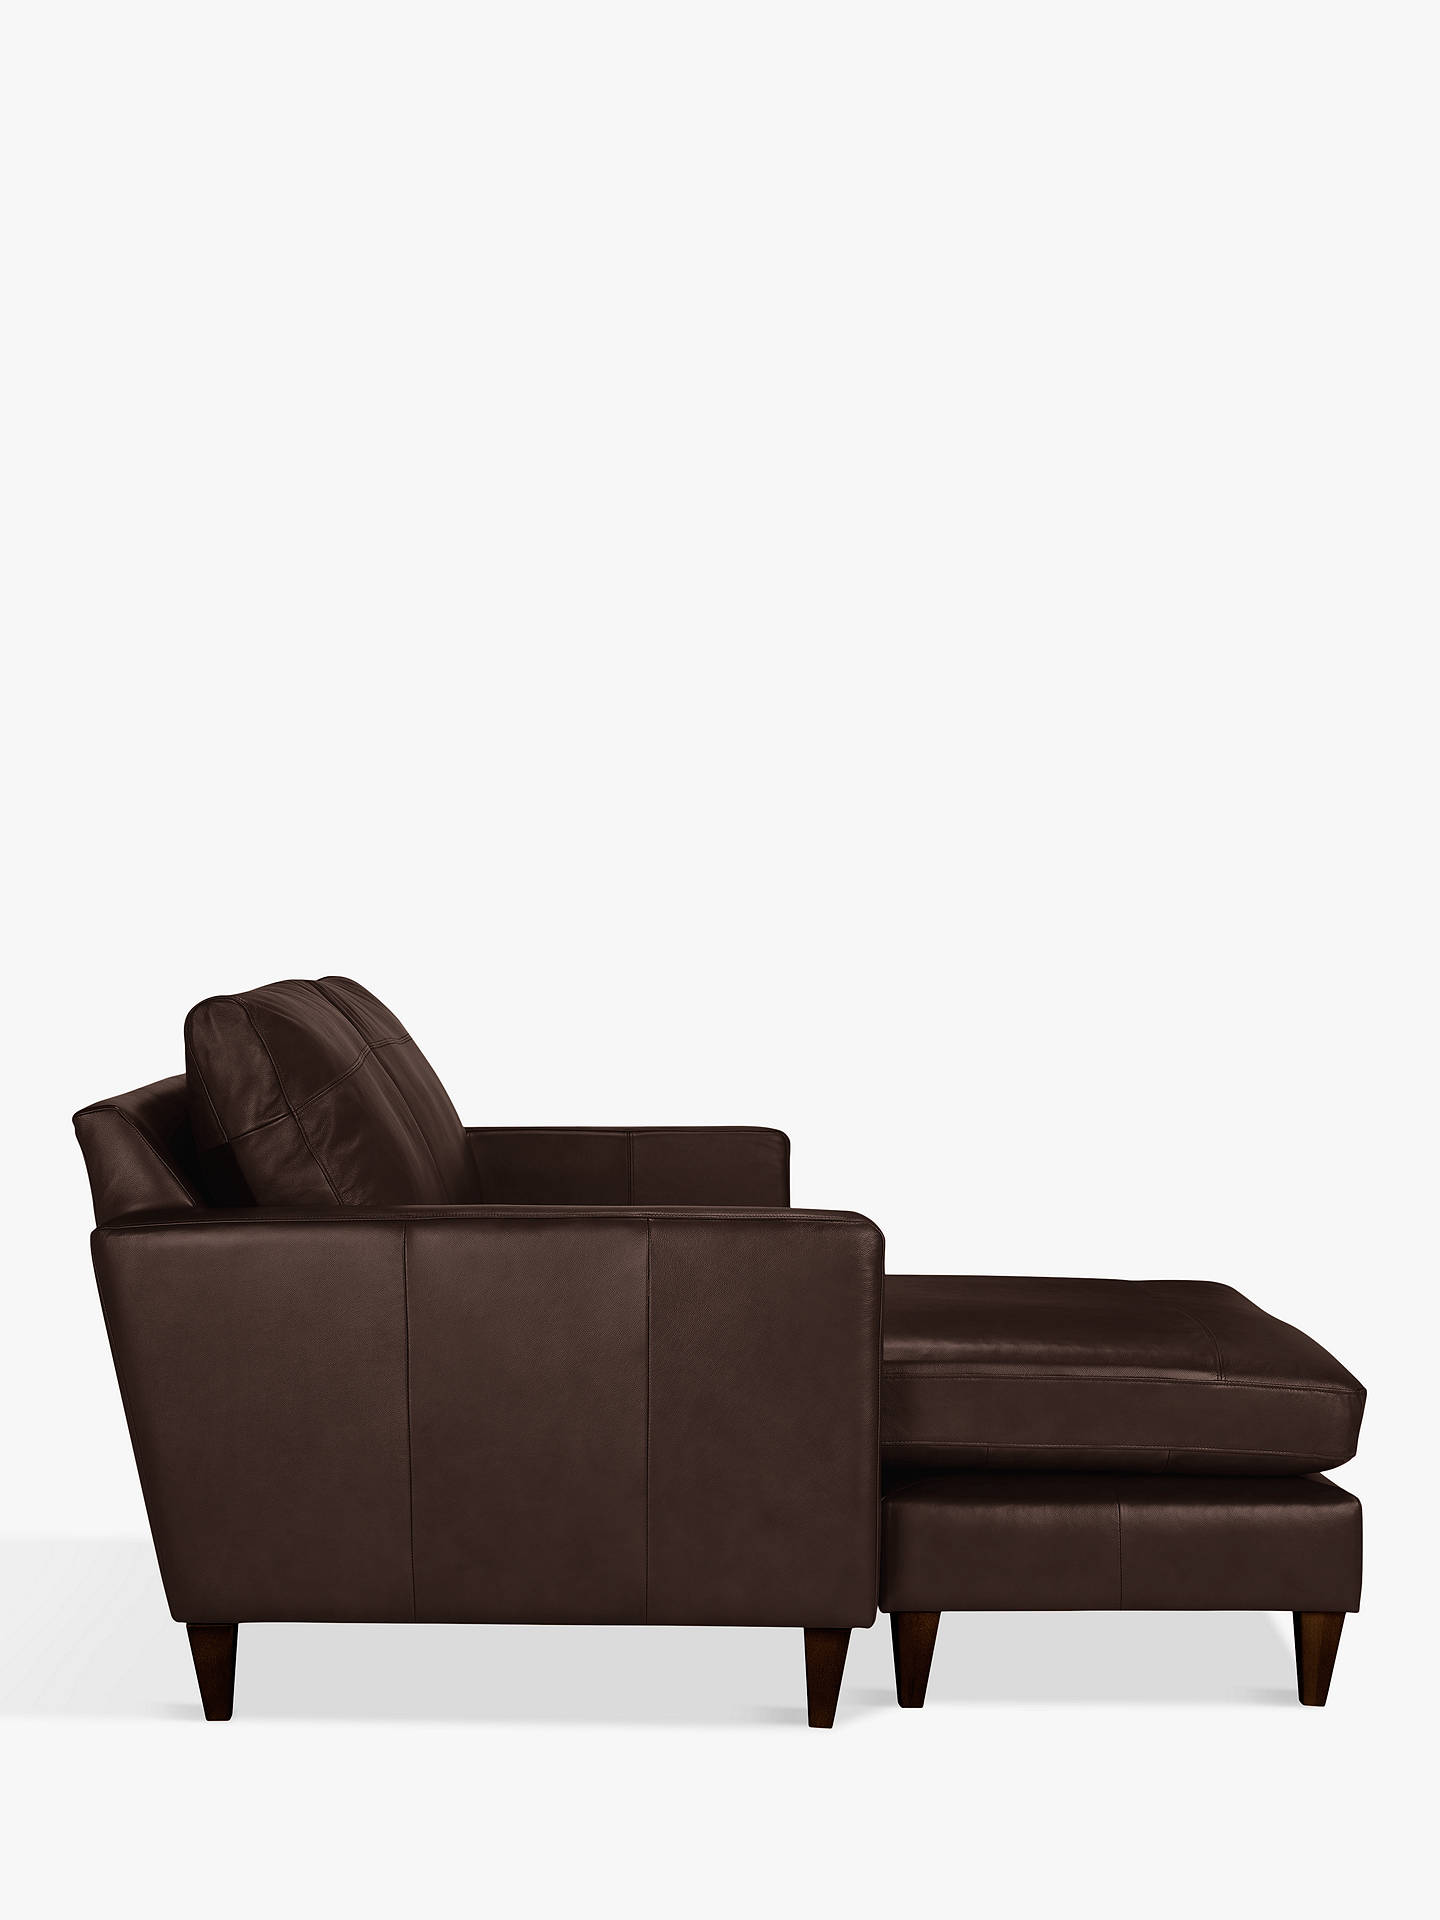 BuyJohn Lewis & Partners Bailey Leather LHF Chaise End Sofa, Dark Leg, Nature Brown Online at johnlewis.com